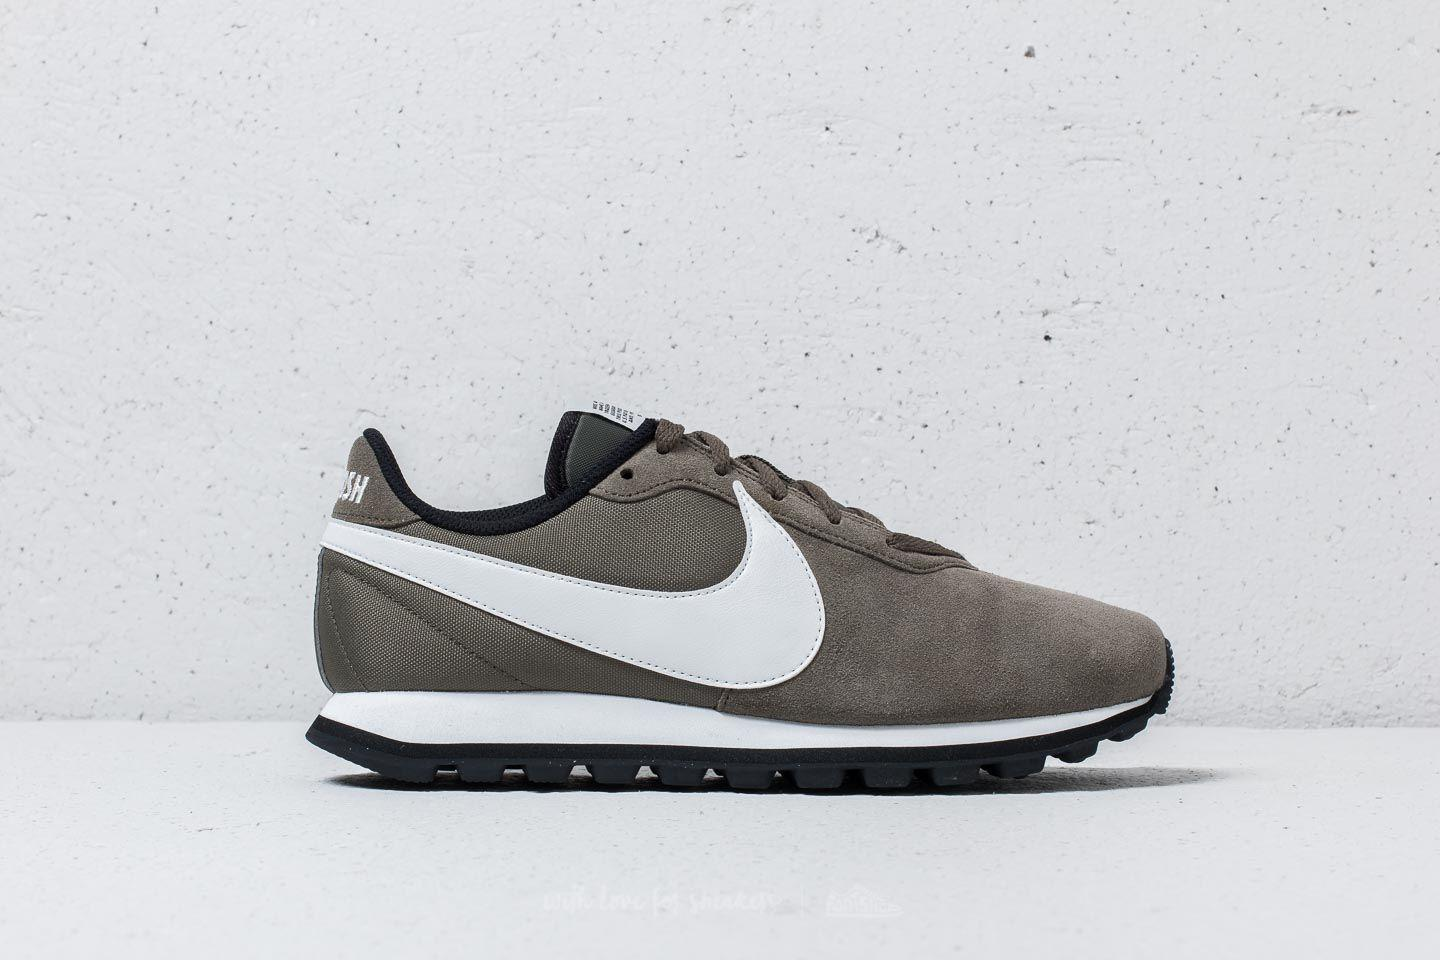 c01e6dca103c6 Nike SportswearPRE-LOVE O.X. - Trainers - twilight marsh summit white black